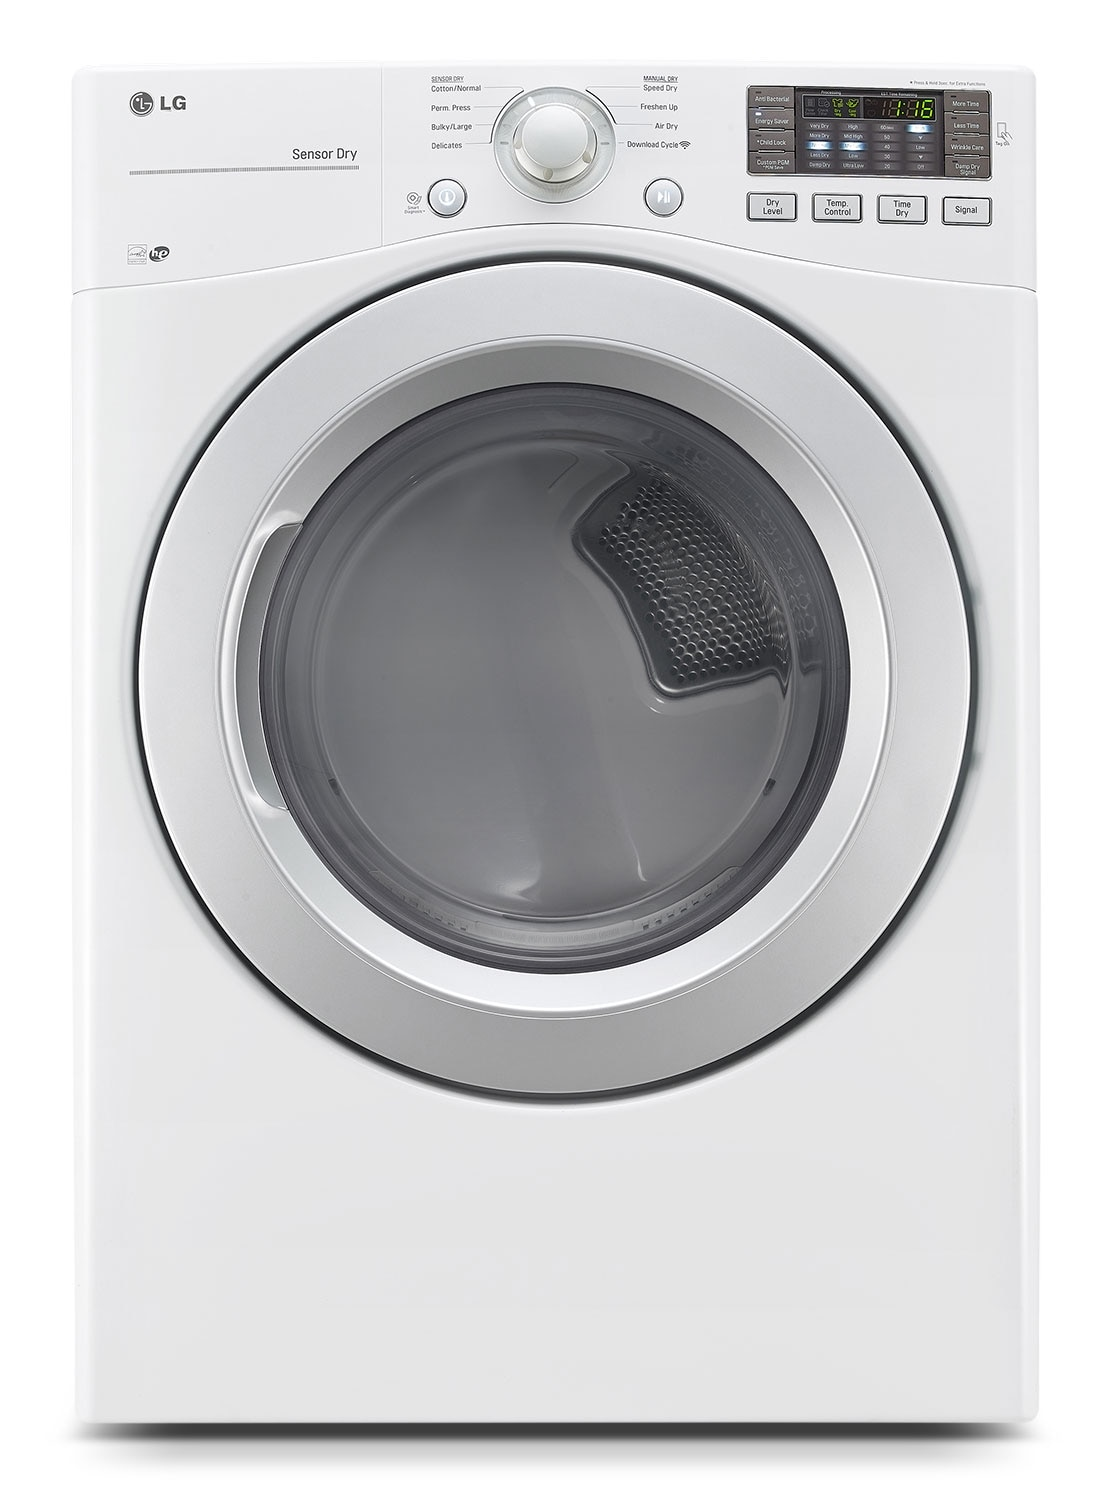 Washers and Dryers - LG Appliances White Gas Dryer (7.4 Cu. Ft.) - DLG3171W